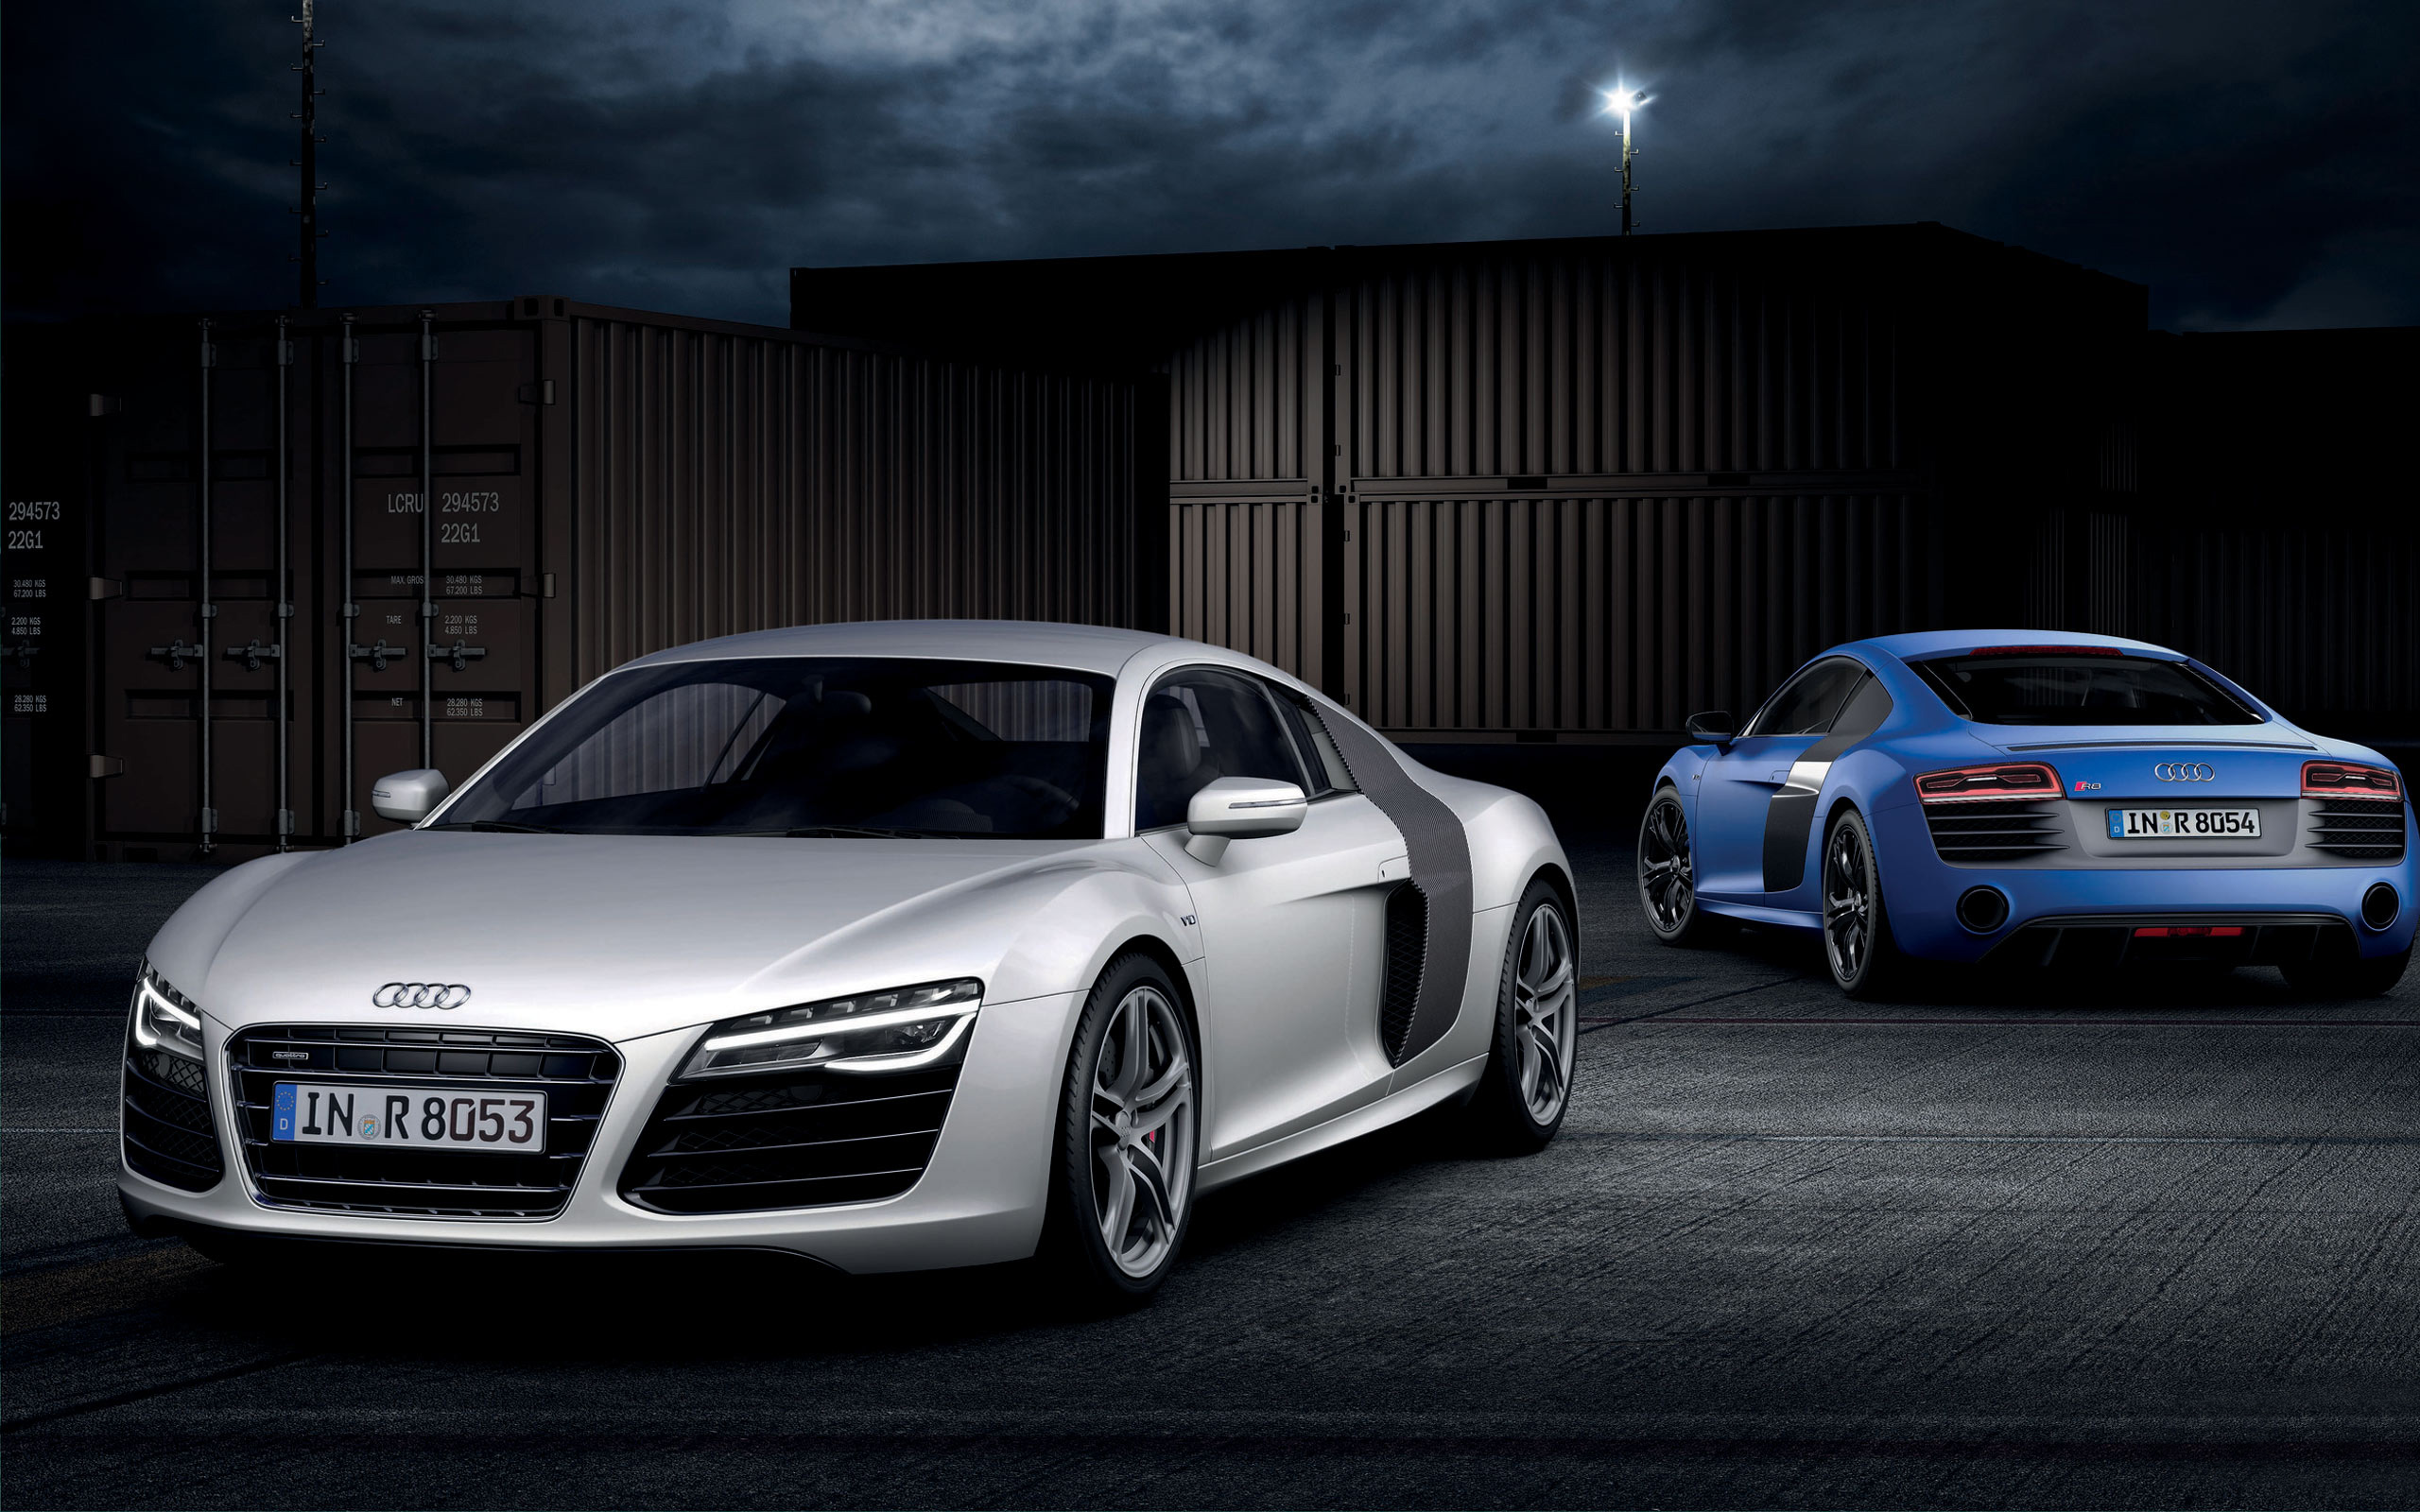 2013 audi r8 v10 plus 3 wallpaper hd car wallpapers id. Black Bedroom Furniture Sets. Home Design Ideas